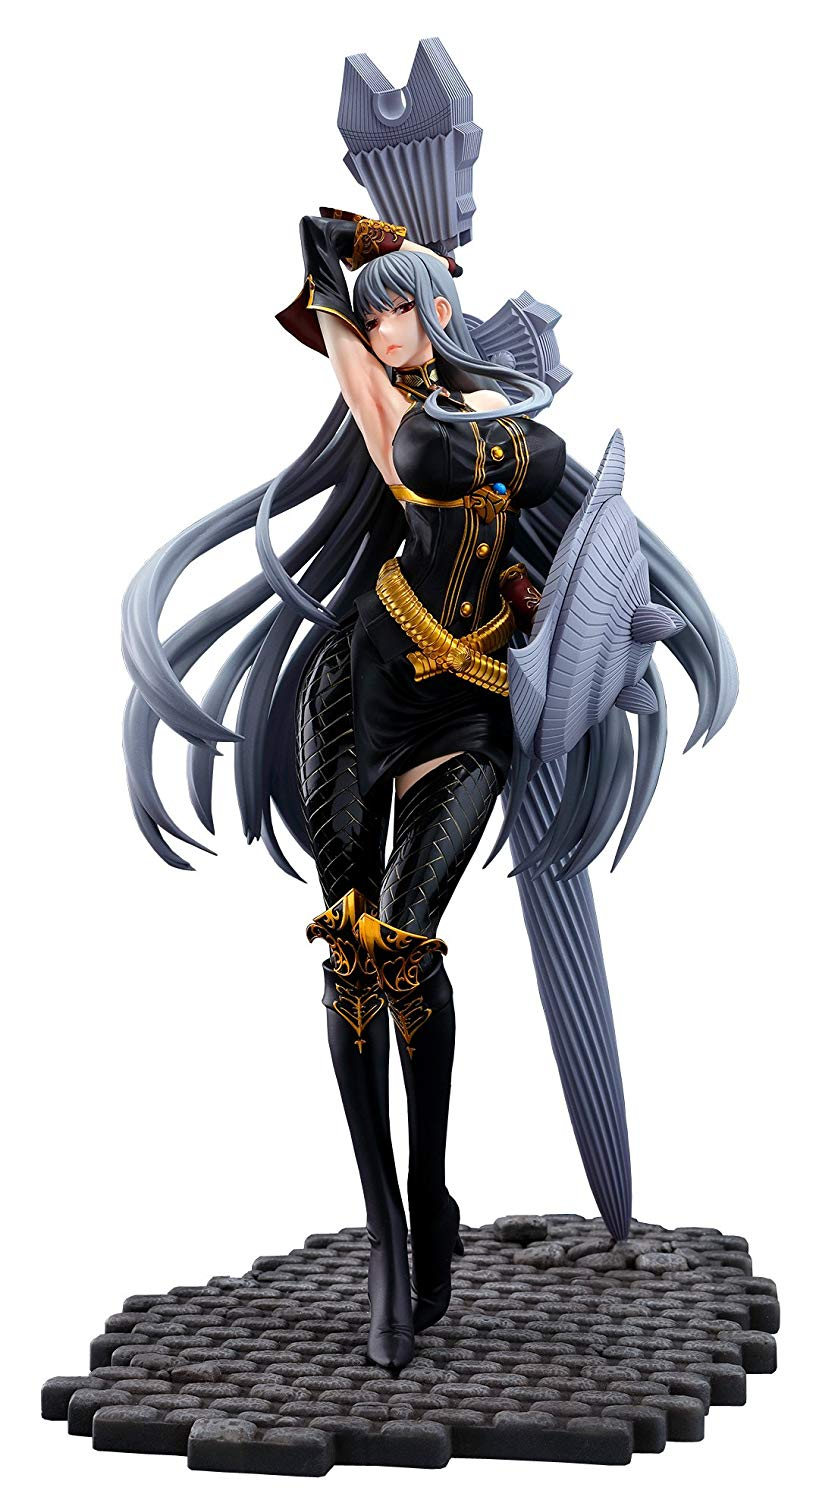 Vertex Valkyria Chronicles: Selvaria Bles (Battle Mode Version) 1: 7 Scale PVC Figure